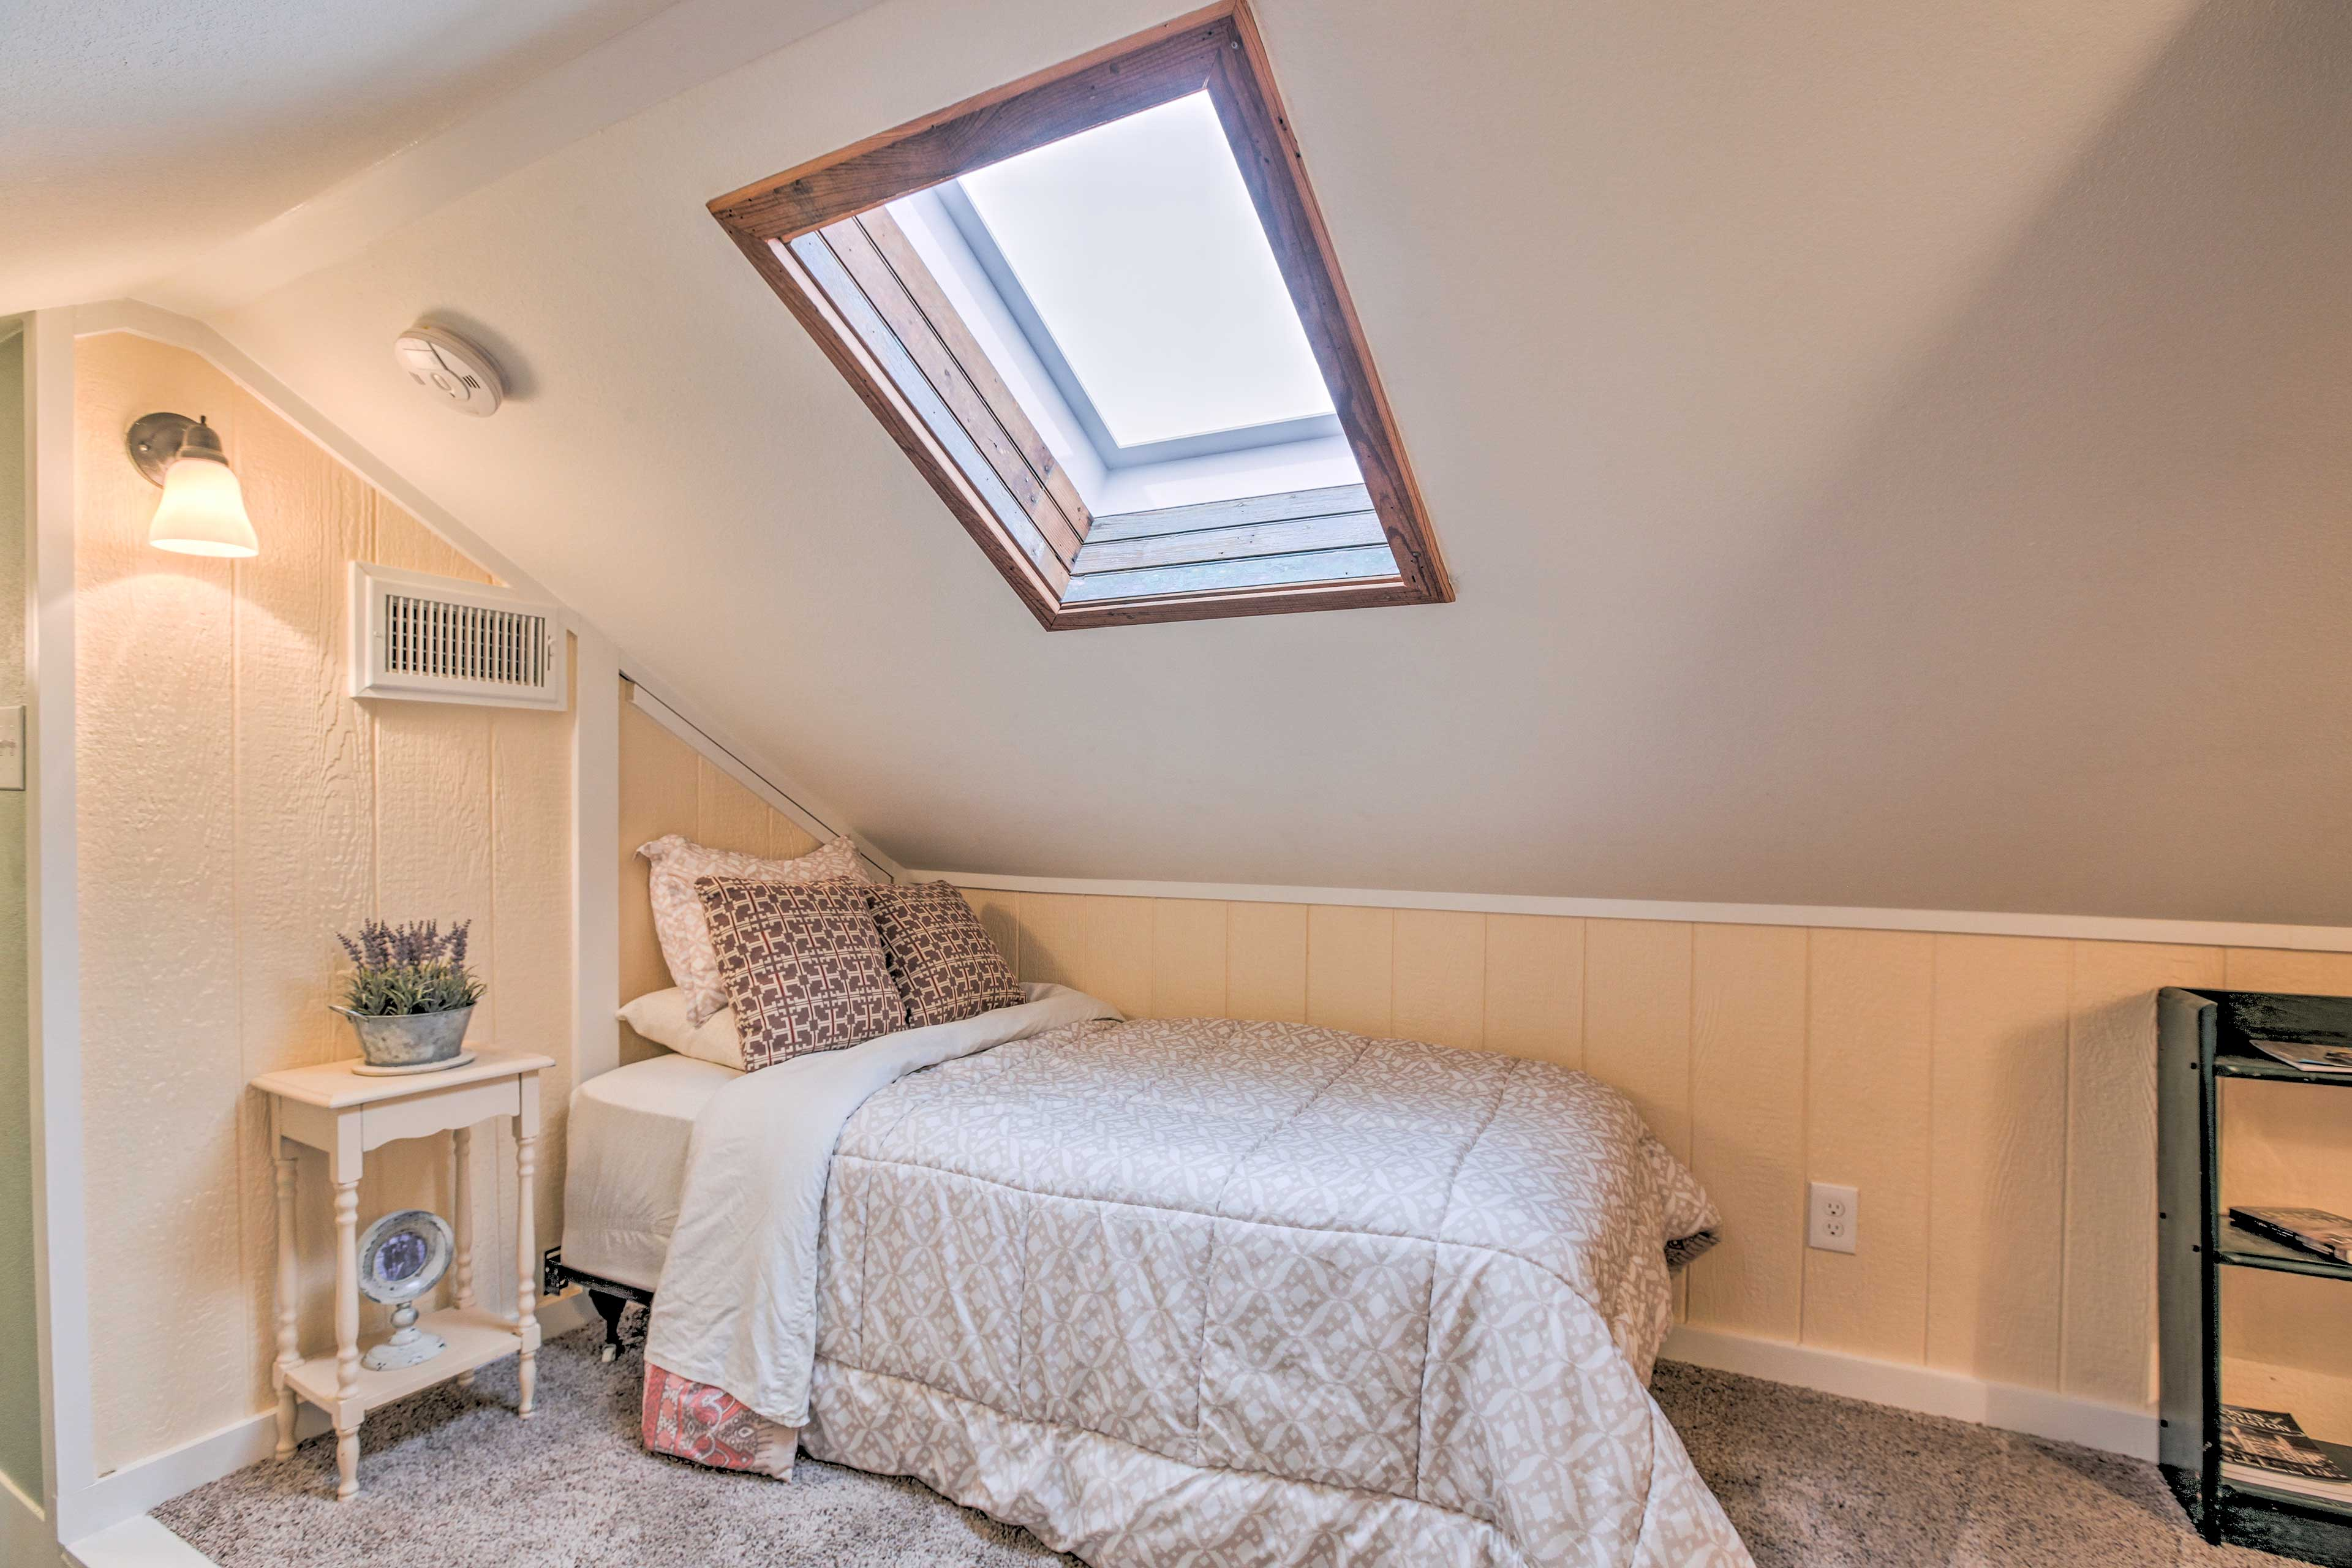 Natural light pours into the upstairs bedroom through the skylight.